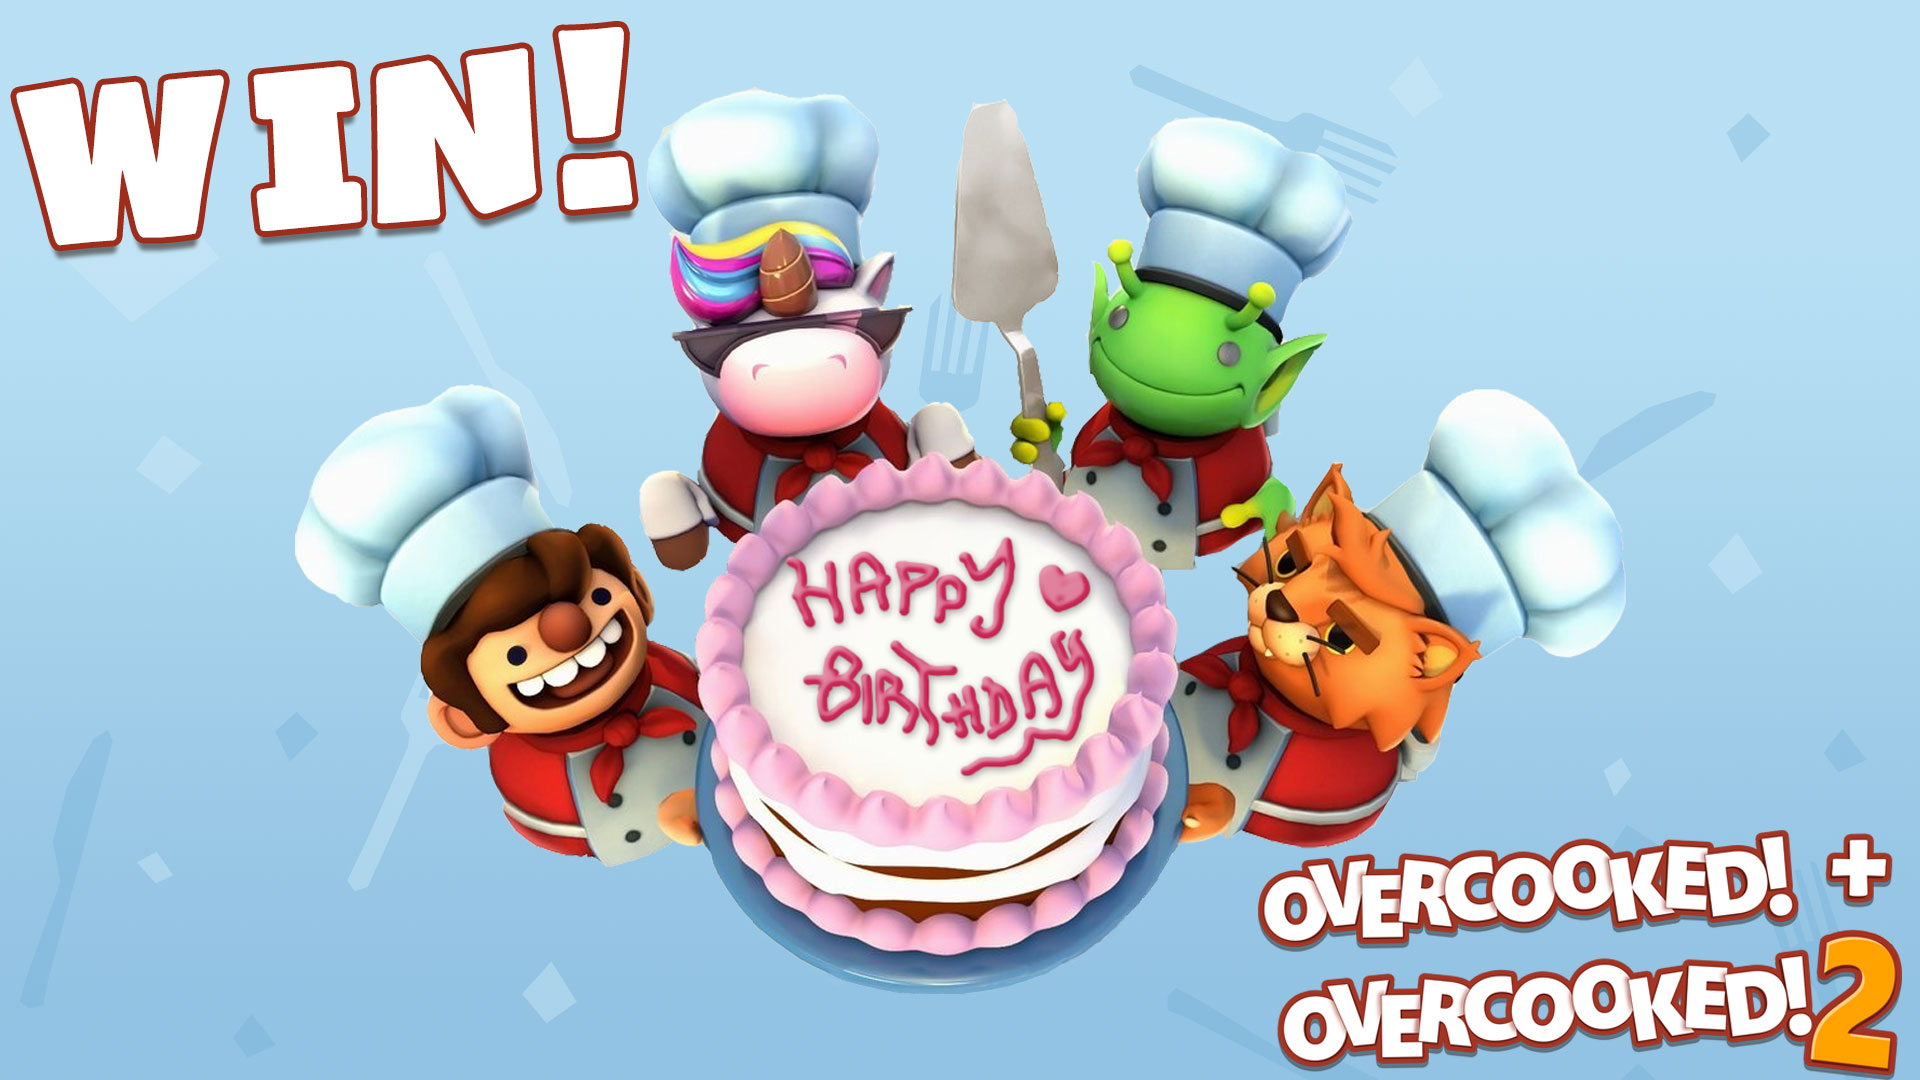 Overcooked Anniversary Competition!